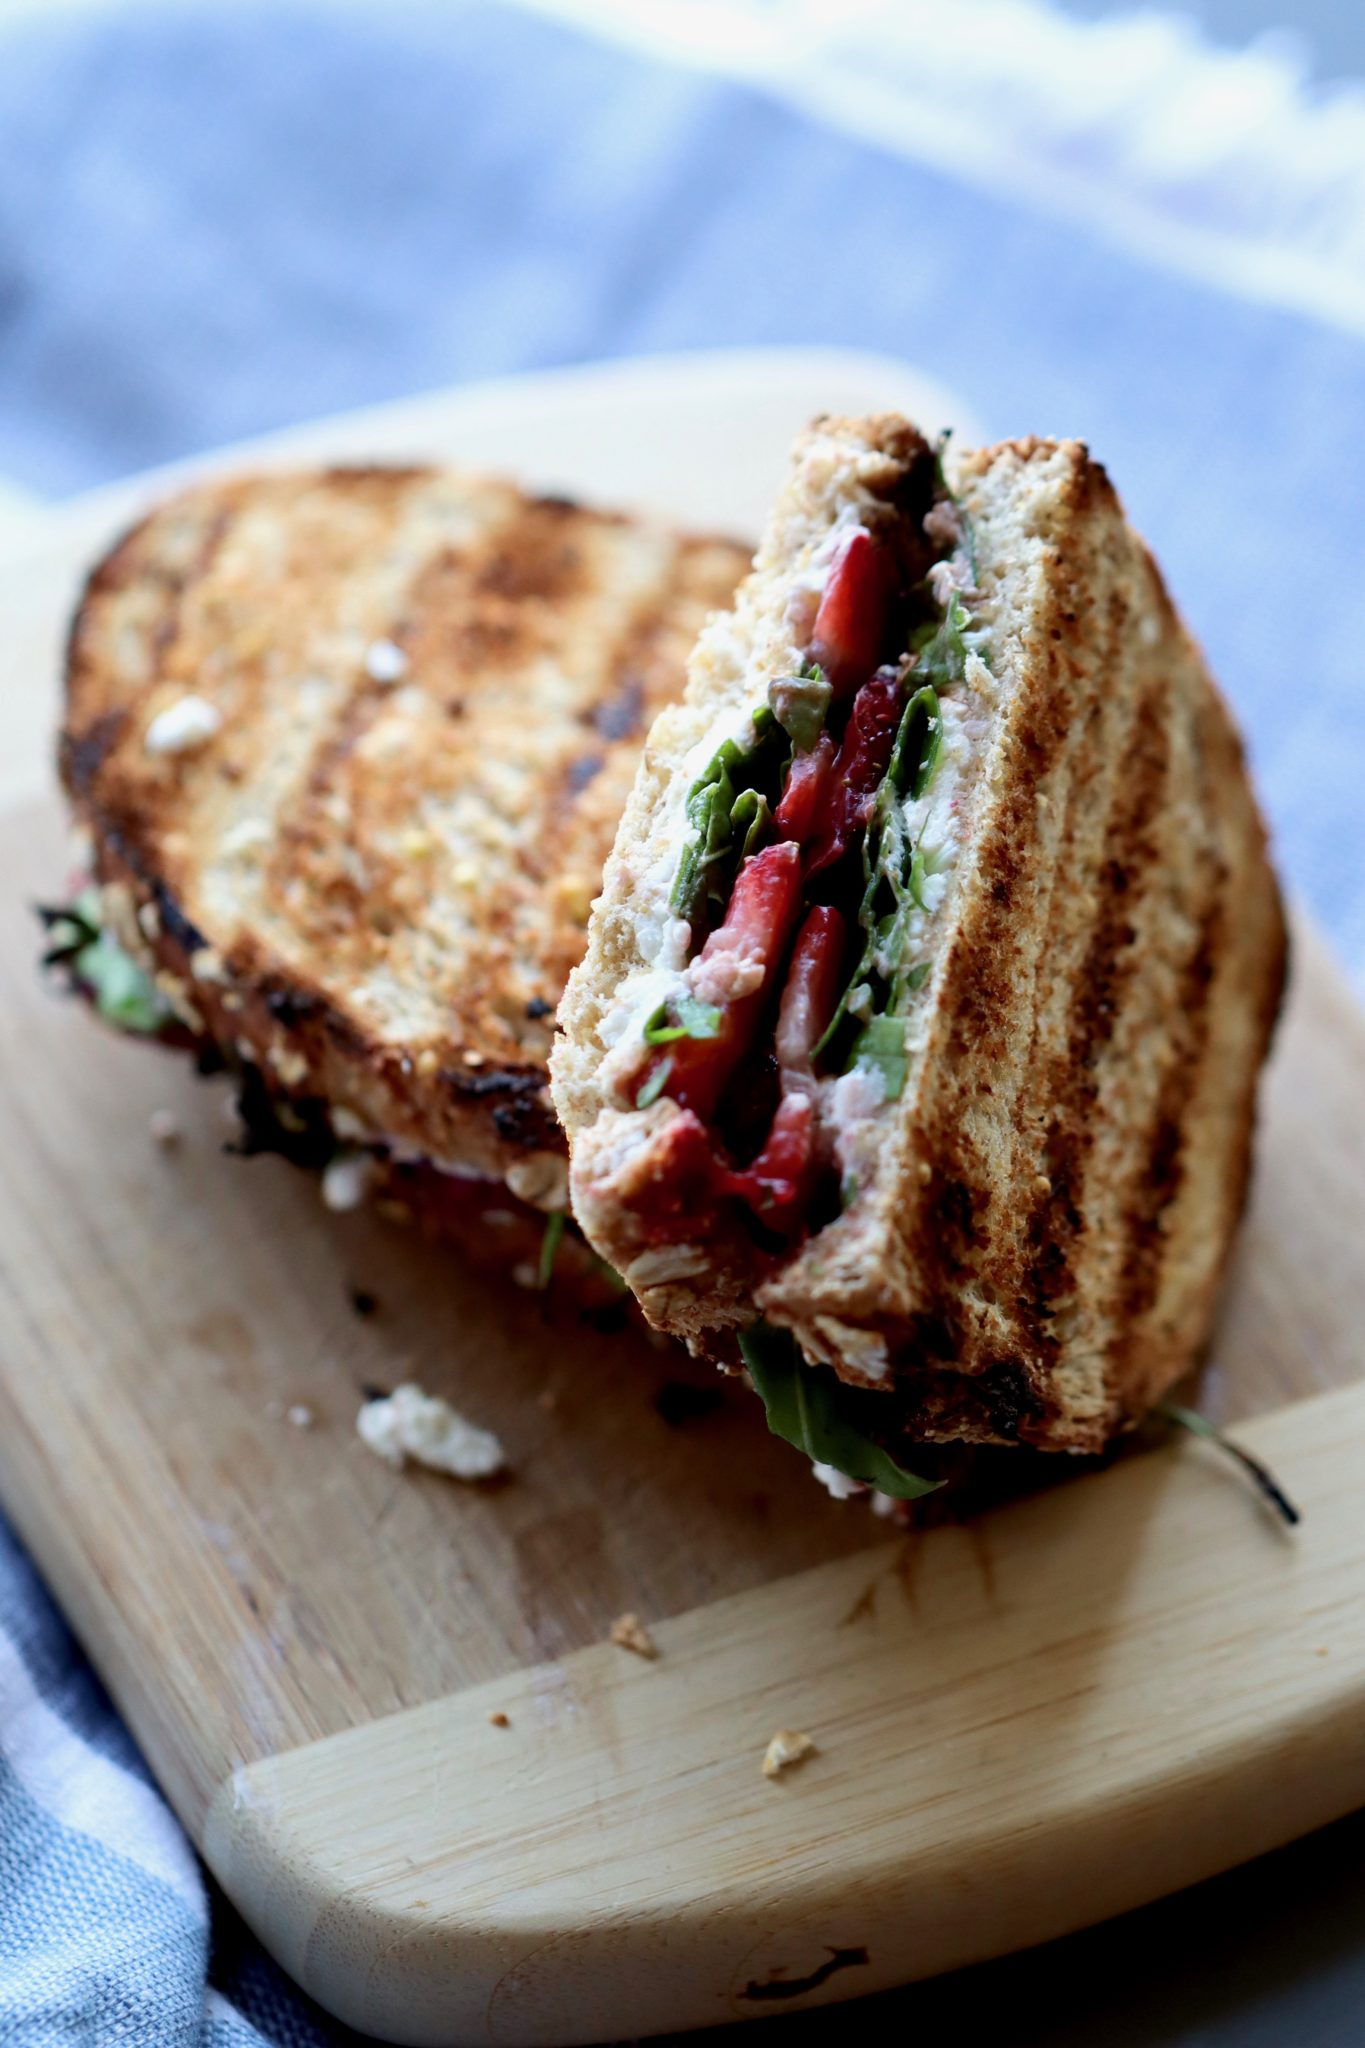 Meal plan ideas: Strawberry and Goat Cheese Paninis at Cait's Plate